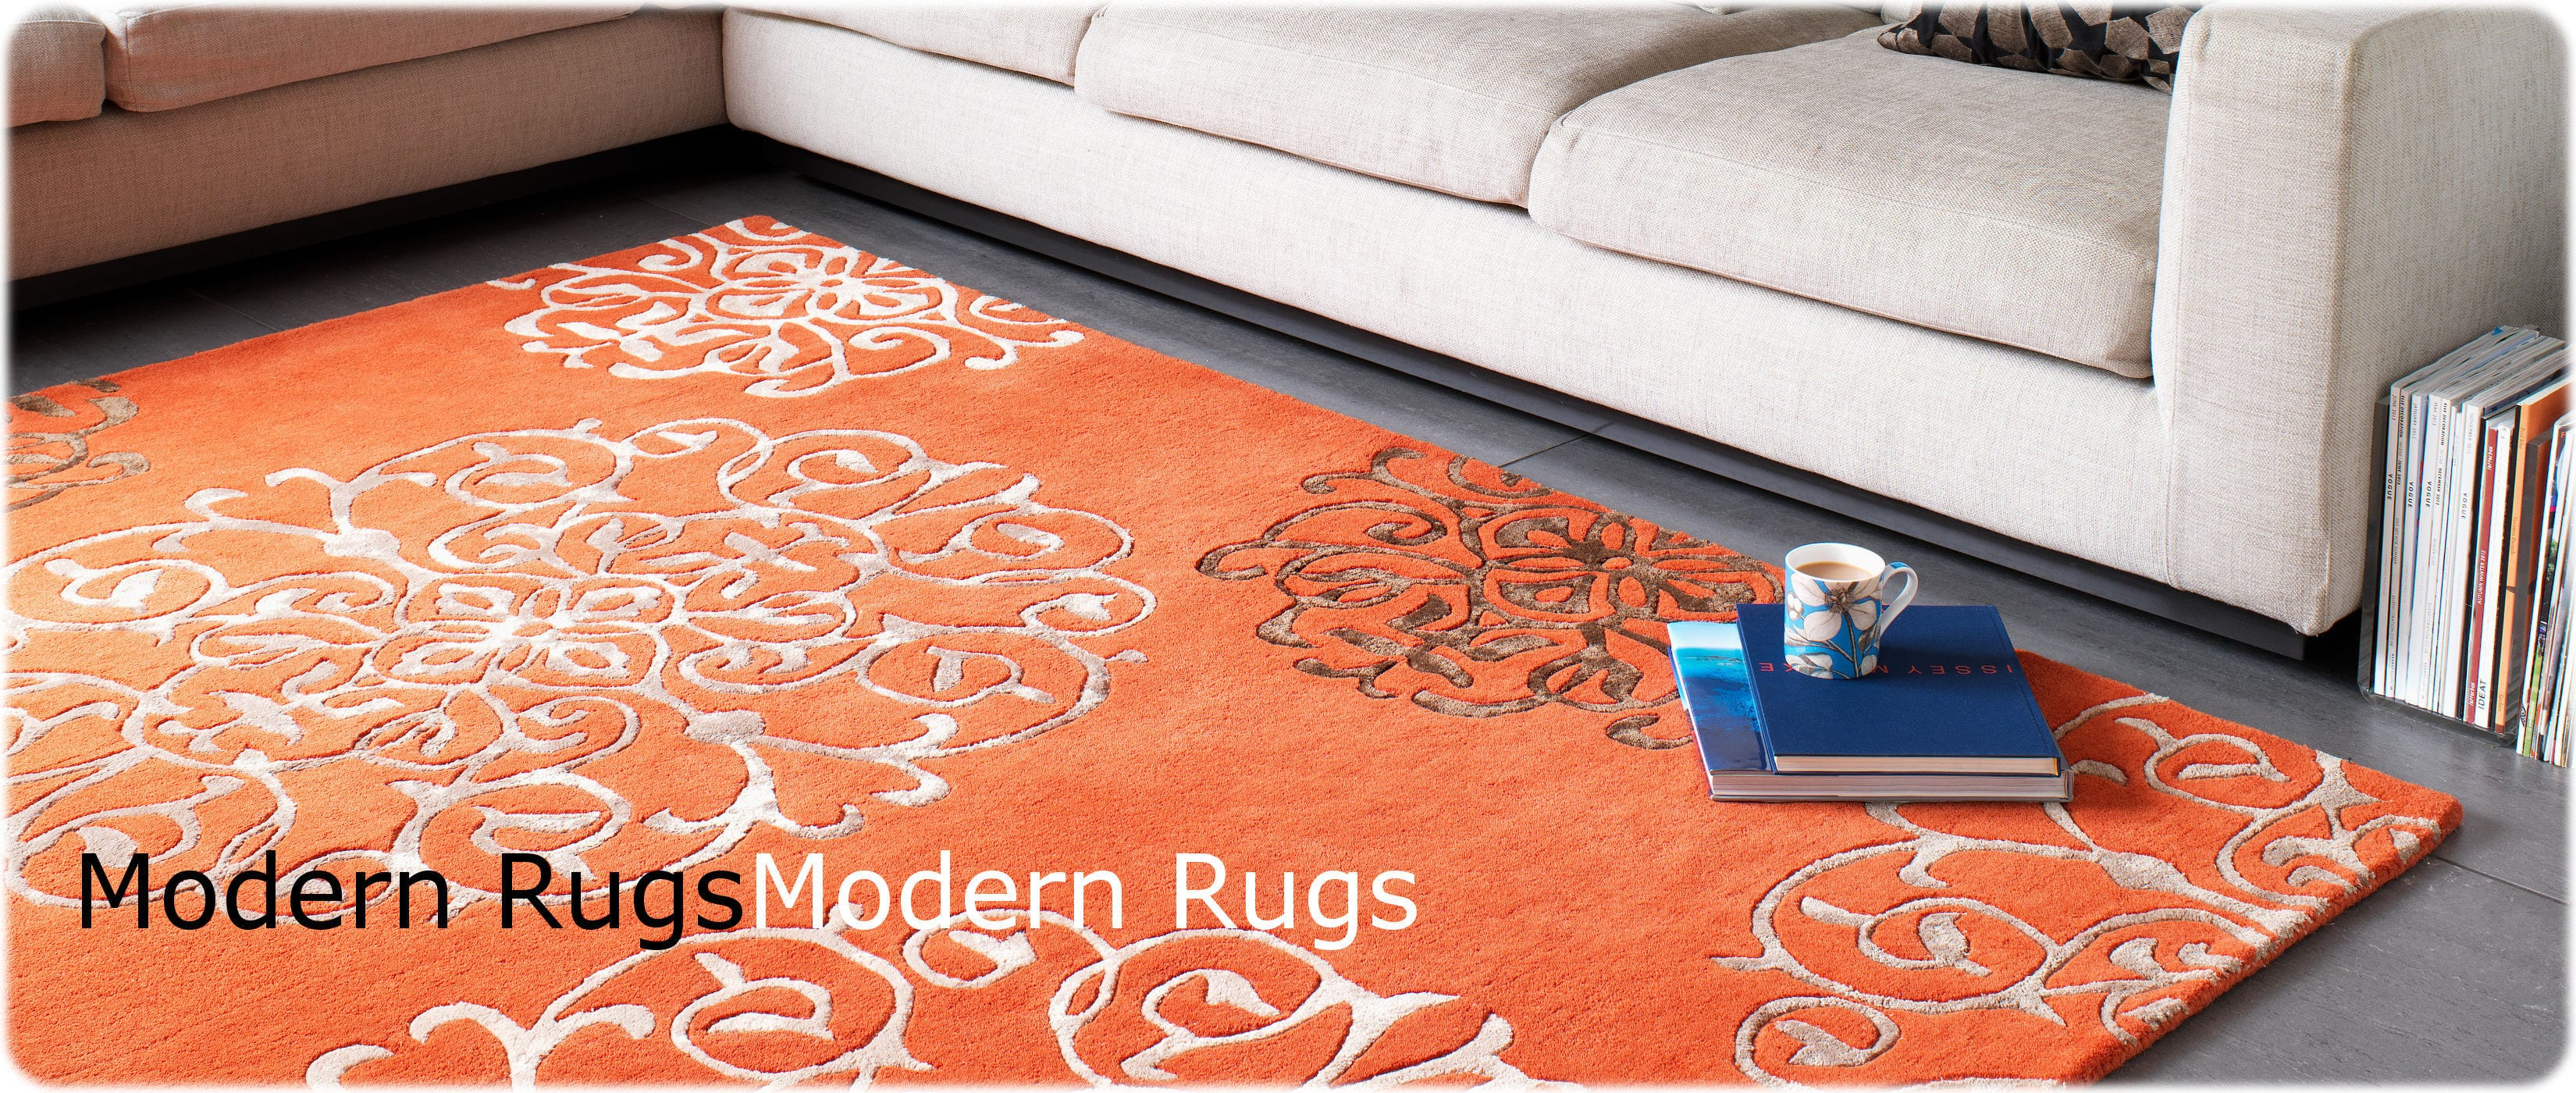 Modern Rugs Section - Main Image